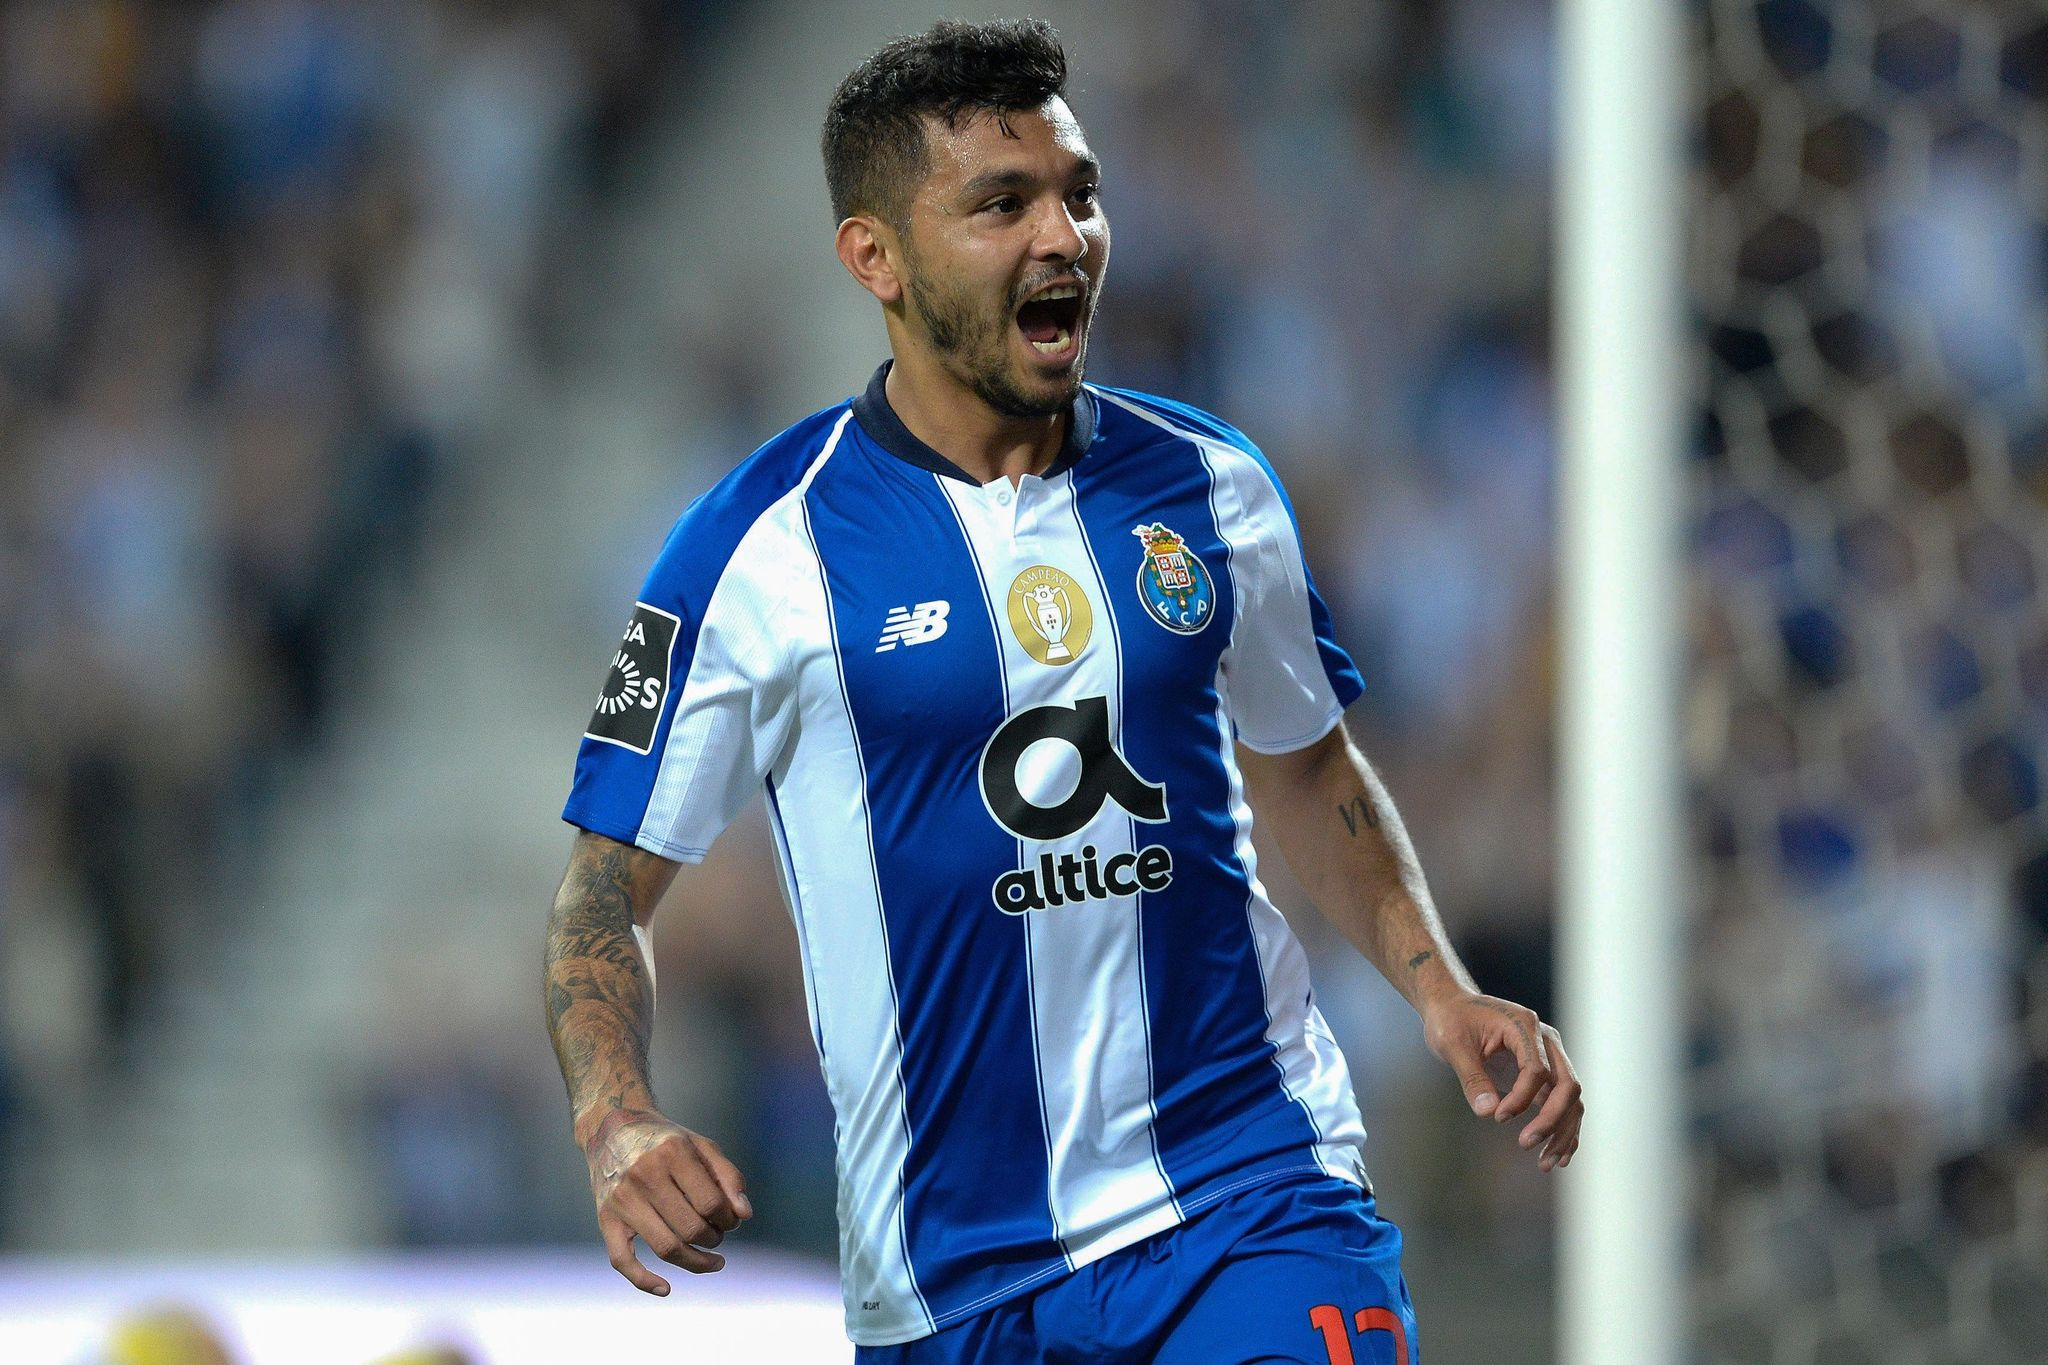 epa07547544 FC <HIT>Porto</HIT>s player Jesus Corona celebrates after scoring a goal against Desportivo das Aves during their Portuguese First League soccer match held at Dragao stadium in <HIT>Porto</HIT>, Portugal, 04 May 2019. EPA/FERNANDO VELUDO